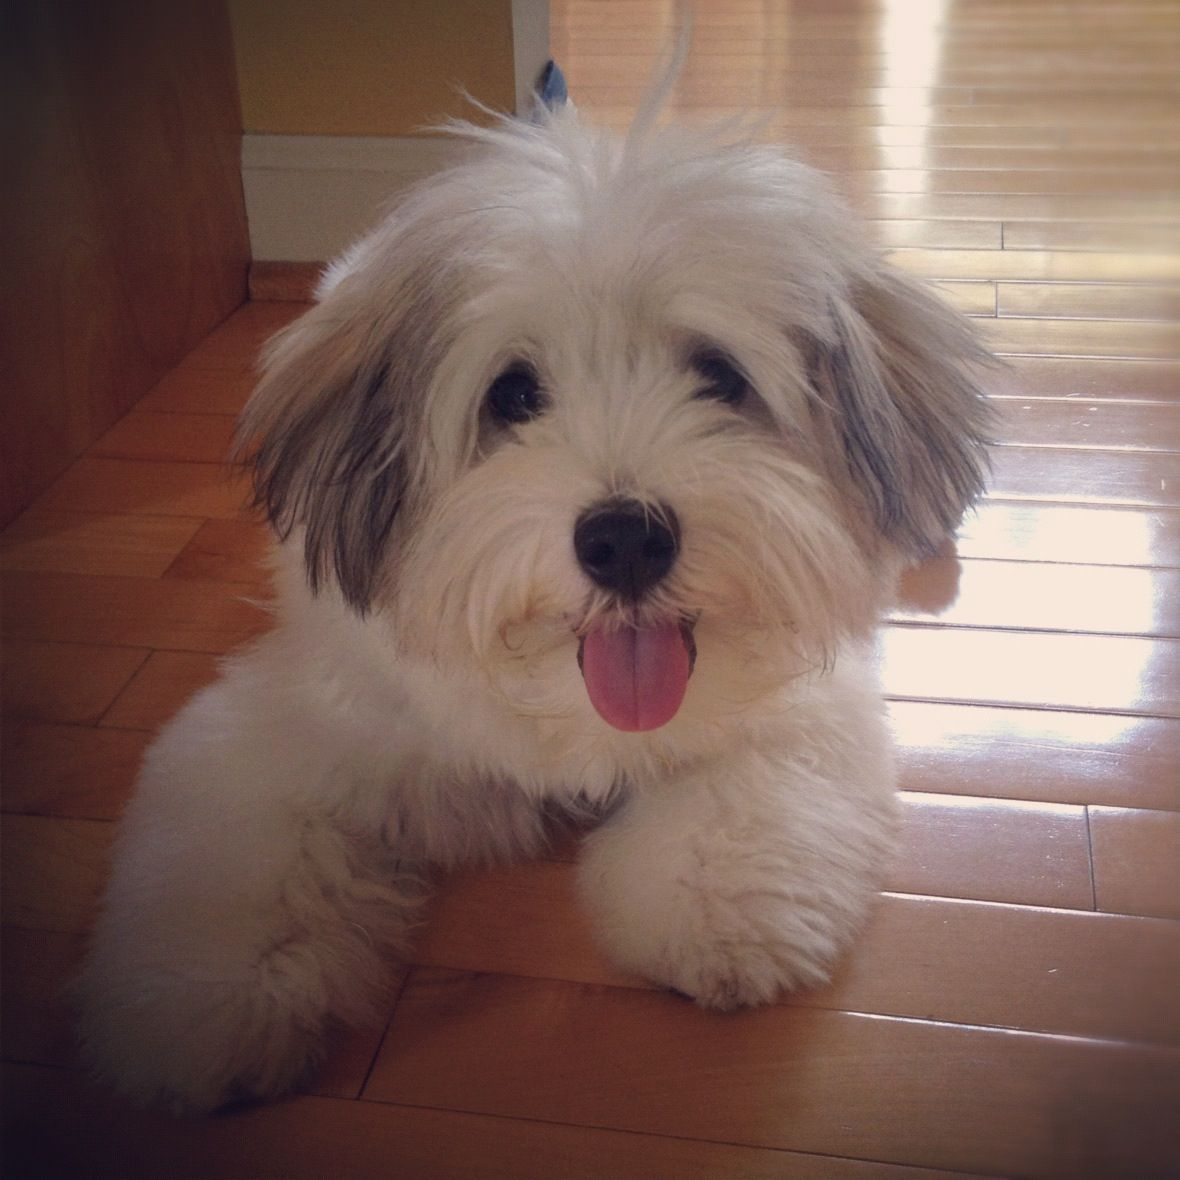 Pictures of havanese dog haircuts dog breeds picture - Best dogs for small spaces pict ...